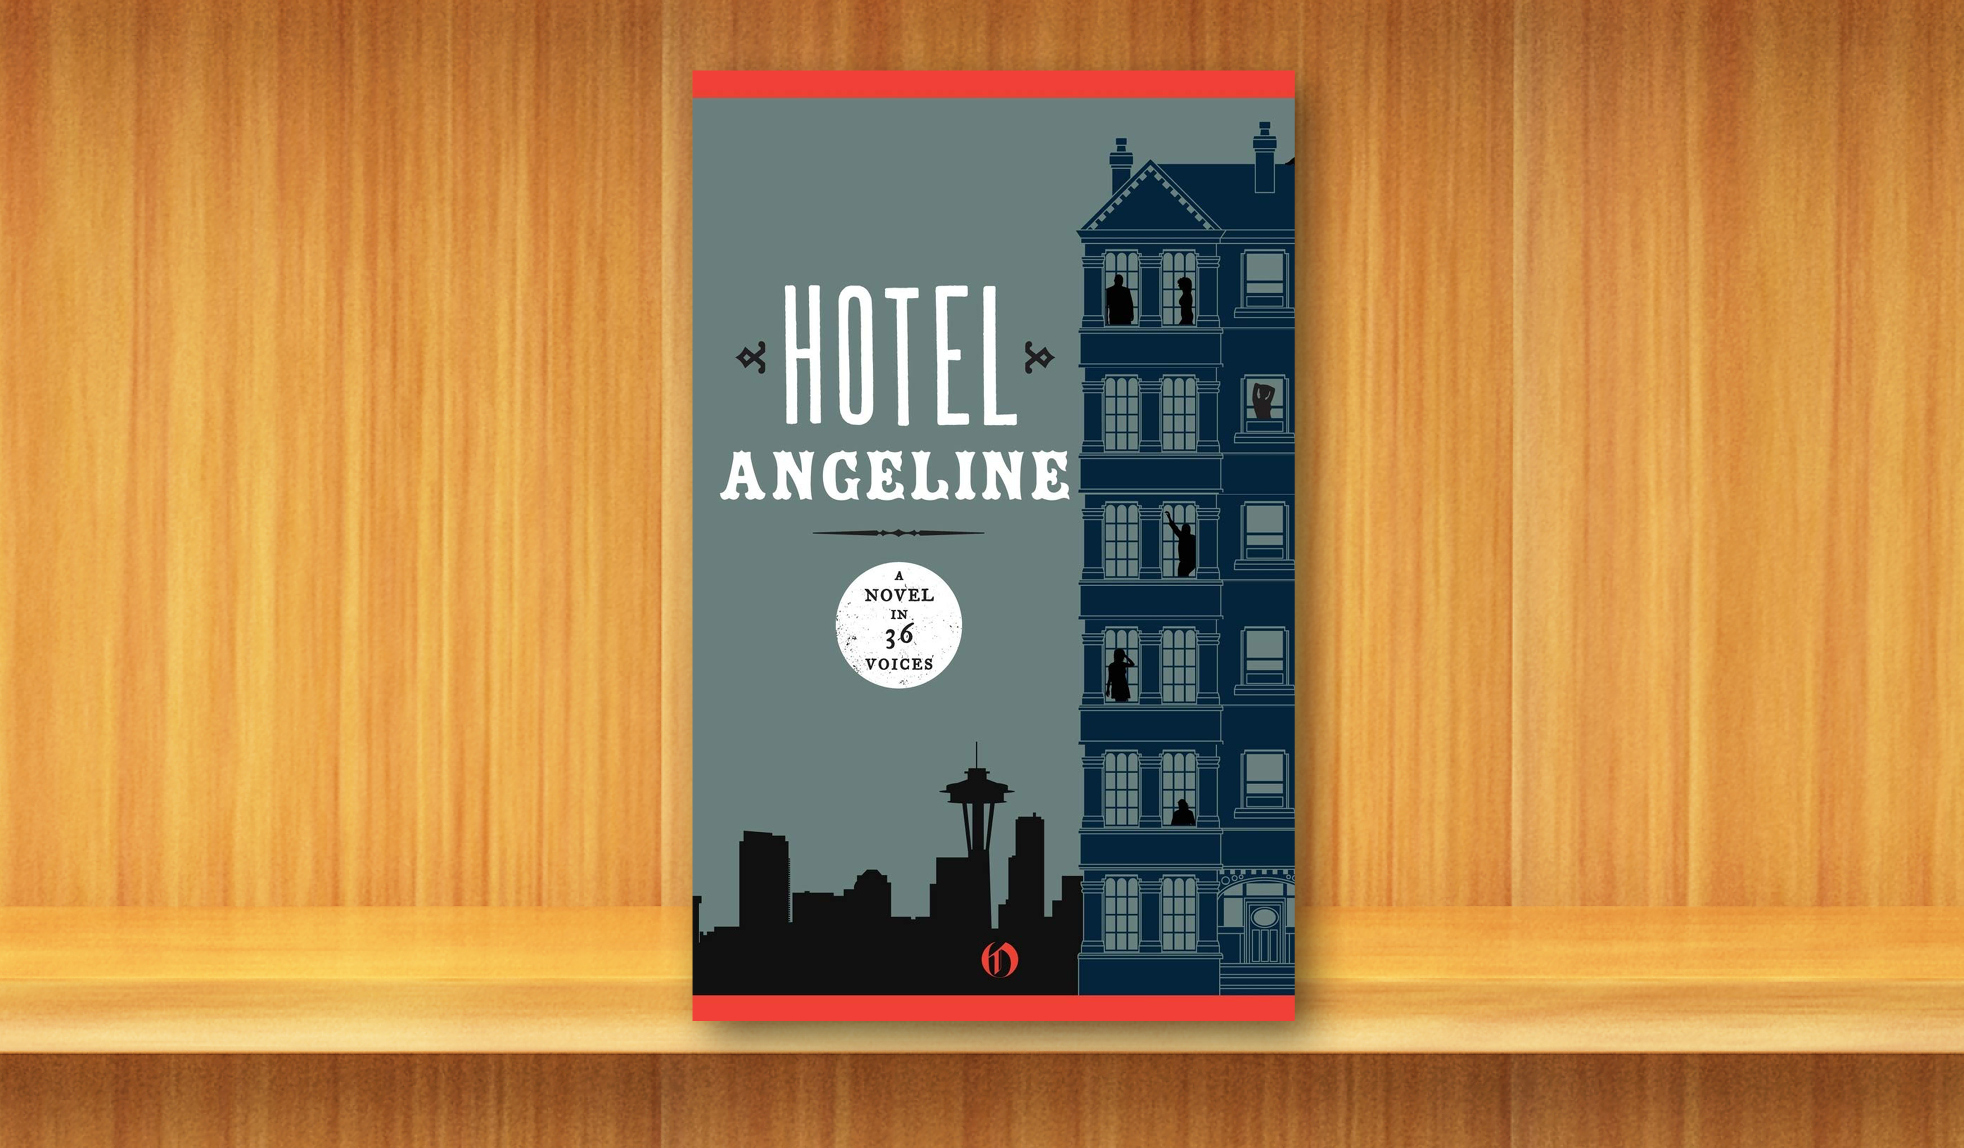 Join our new virtual book club; the first book is Hotel Angeline!